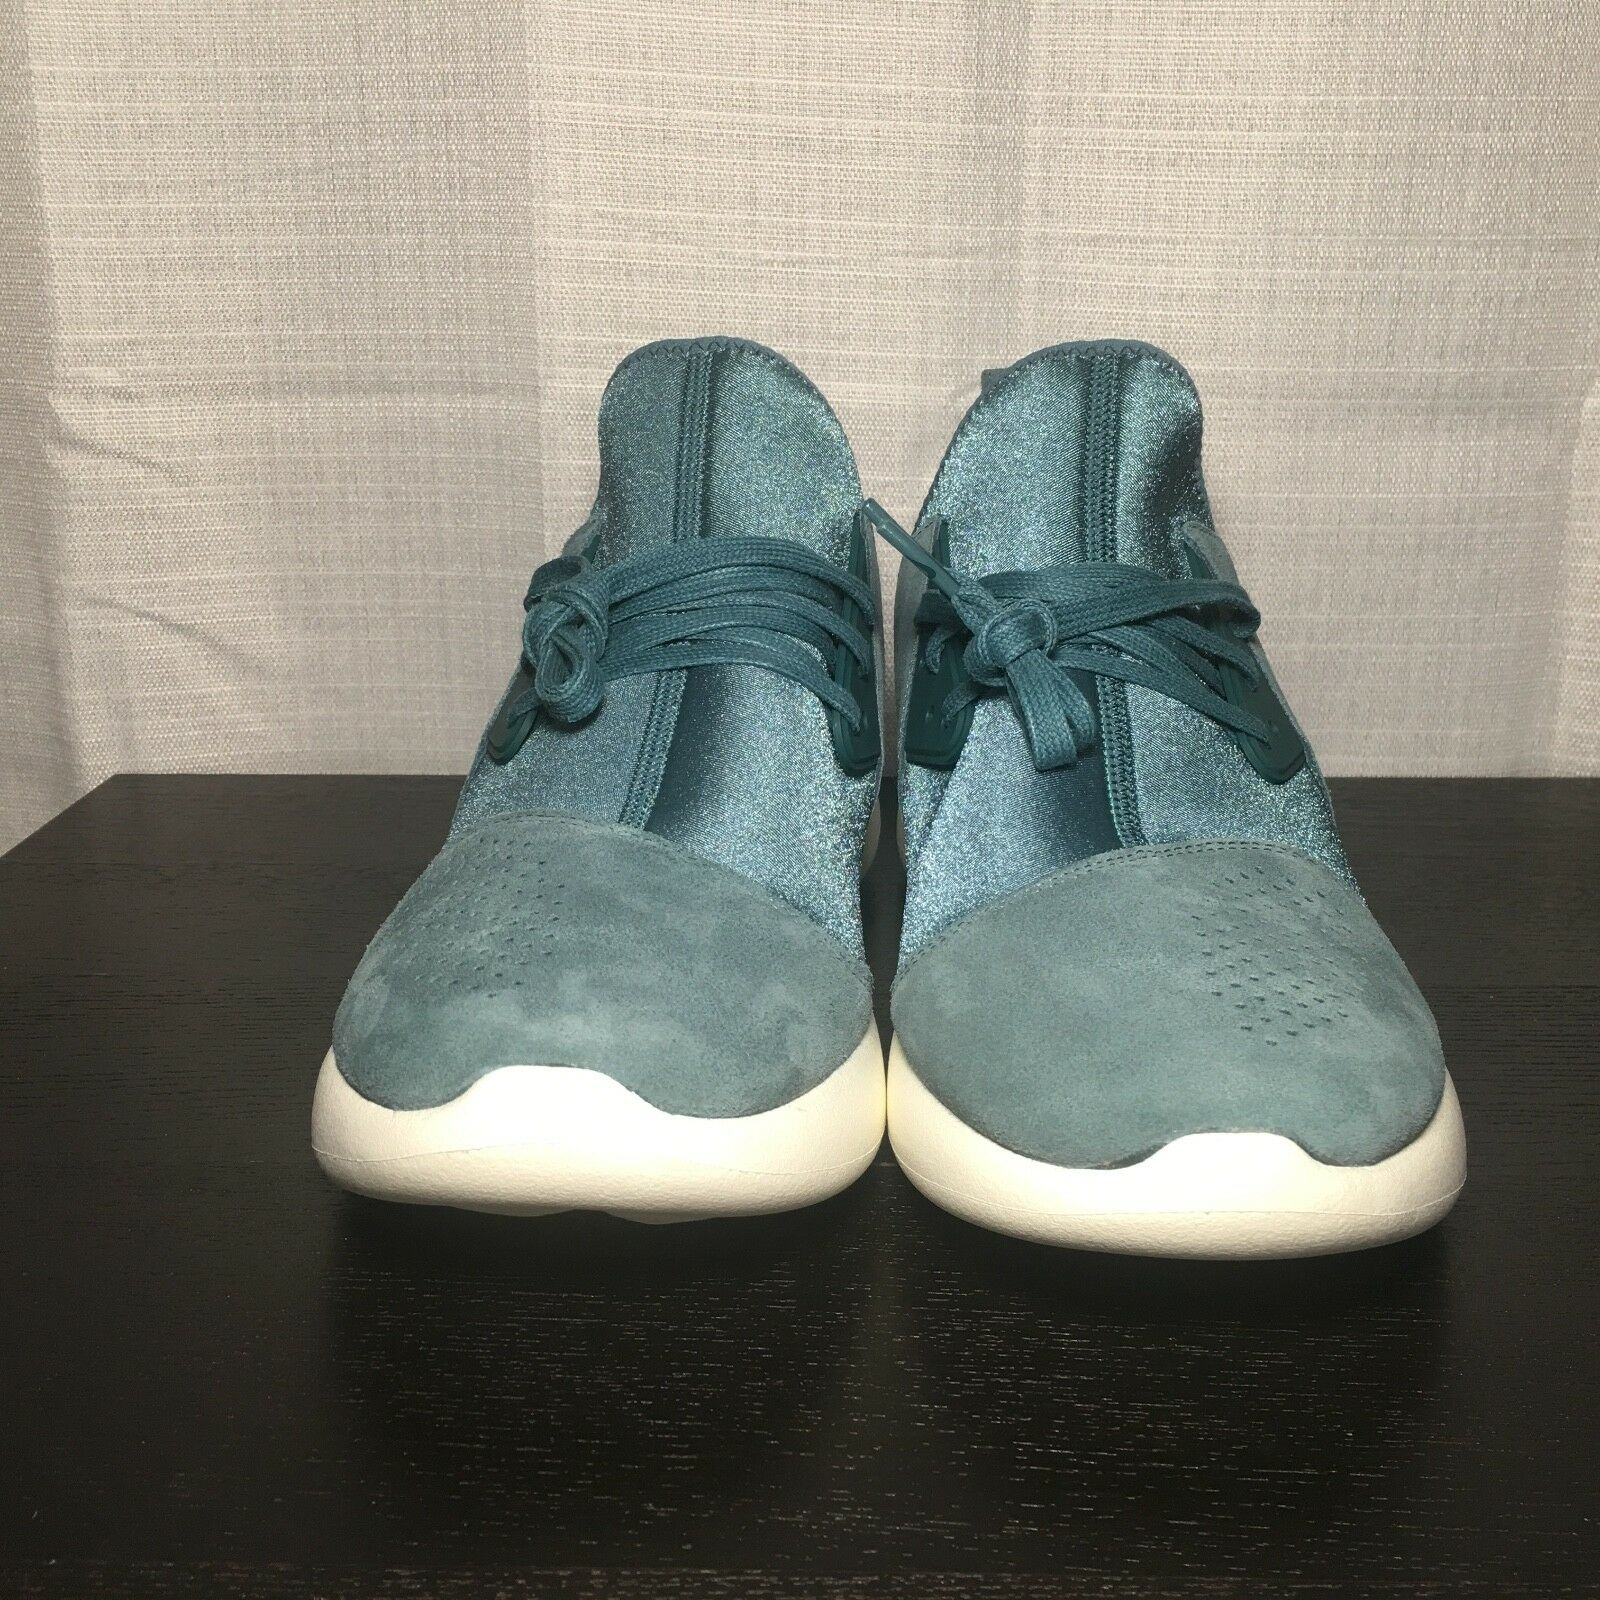 Nike LunarCharge Premium shoes Iced Jade Teal 923281 331 Turqoise Mens US 11